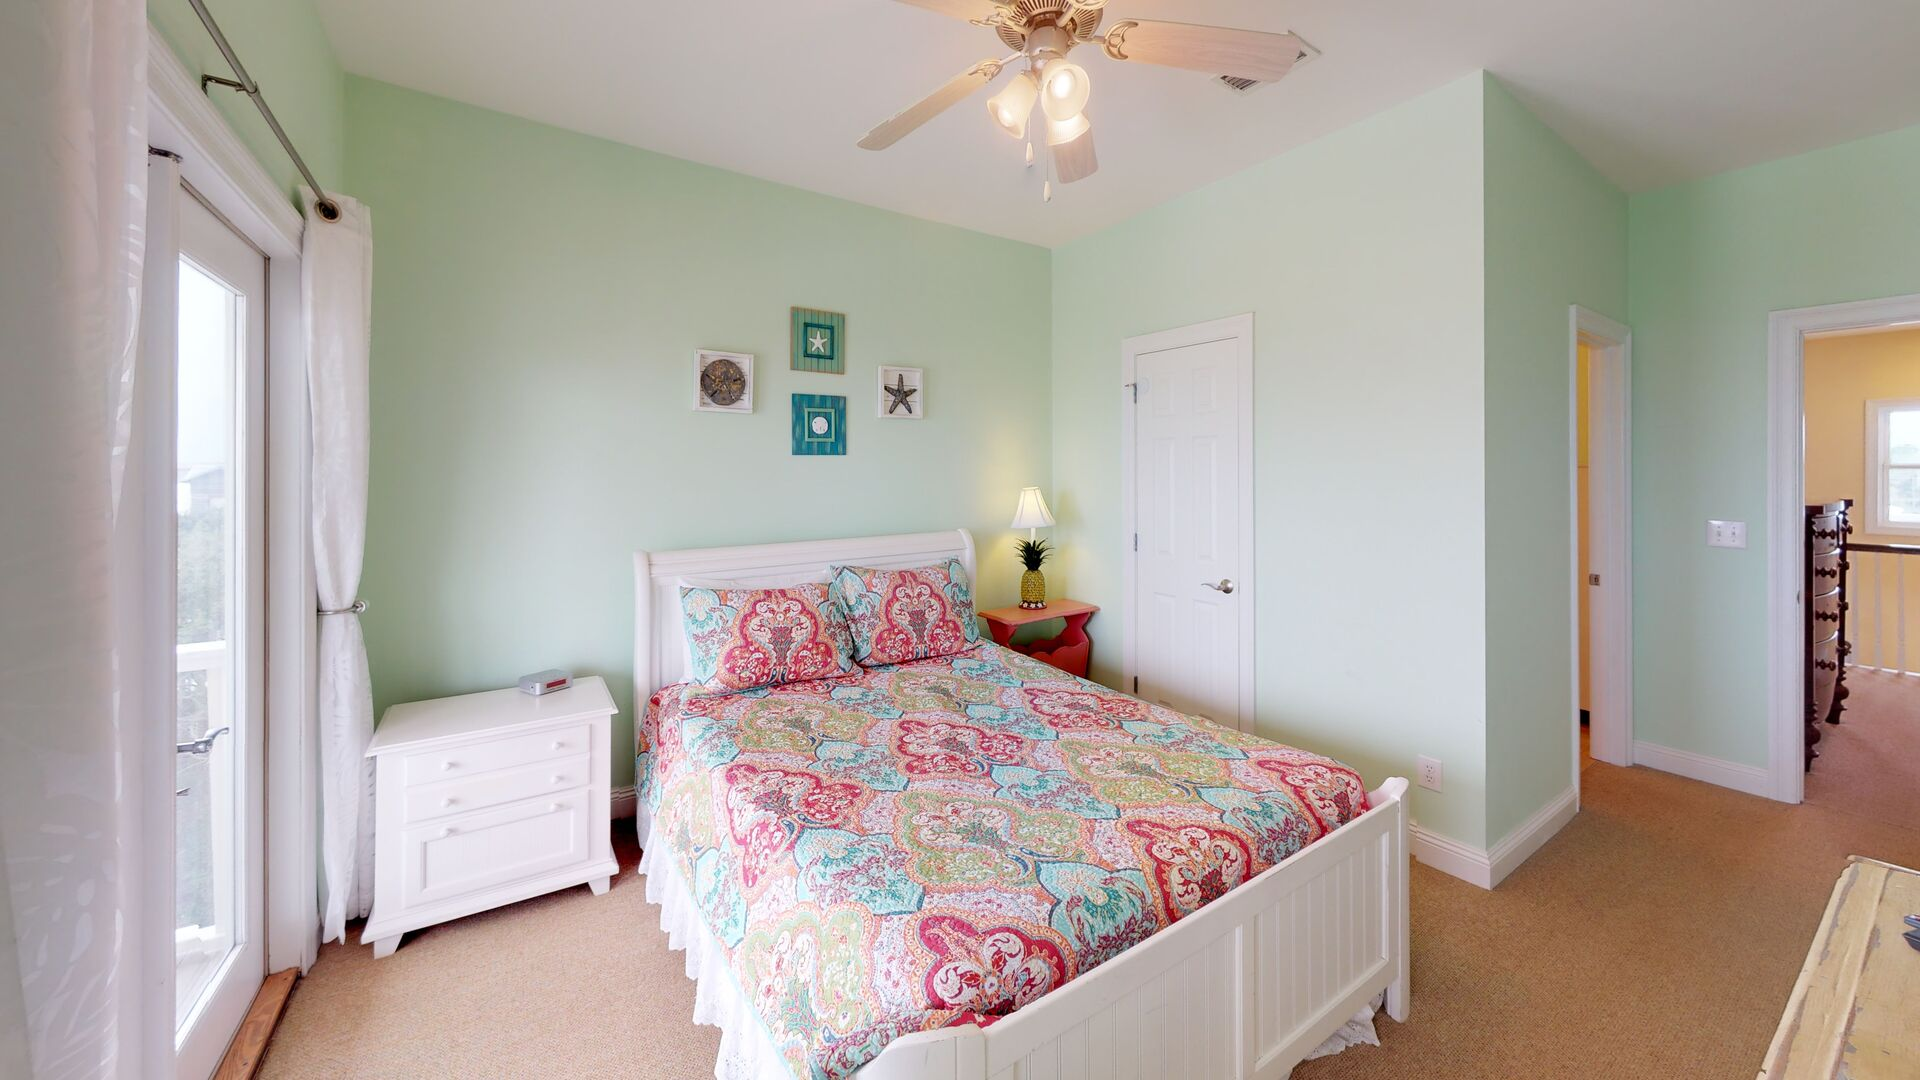 Spacious Bedroom Offers an Attached Bathroom and Deck Access.